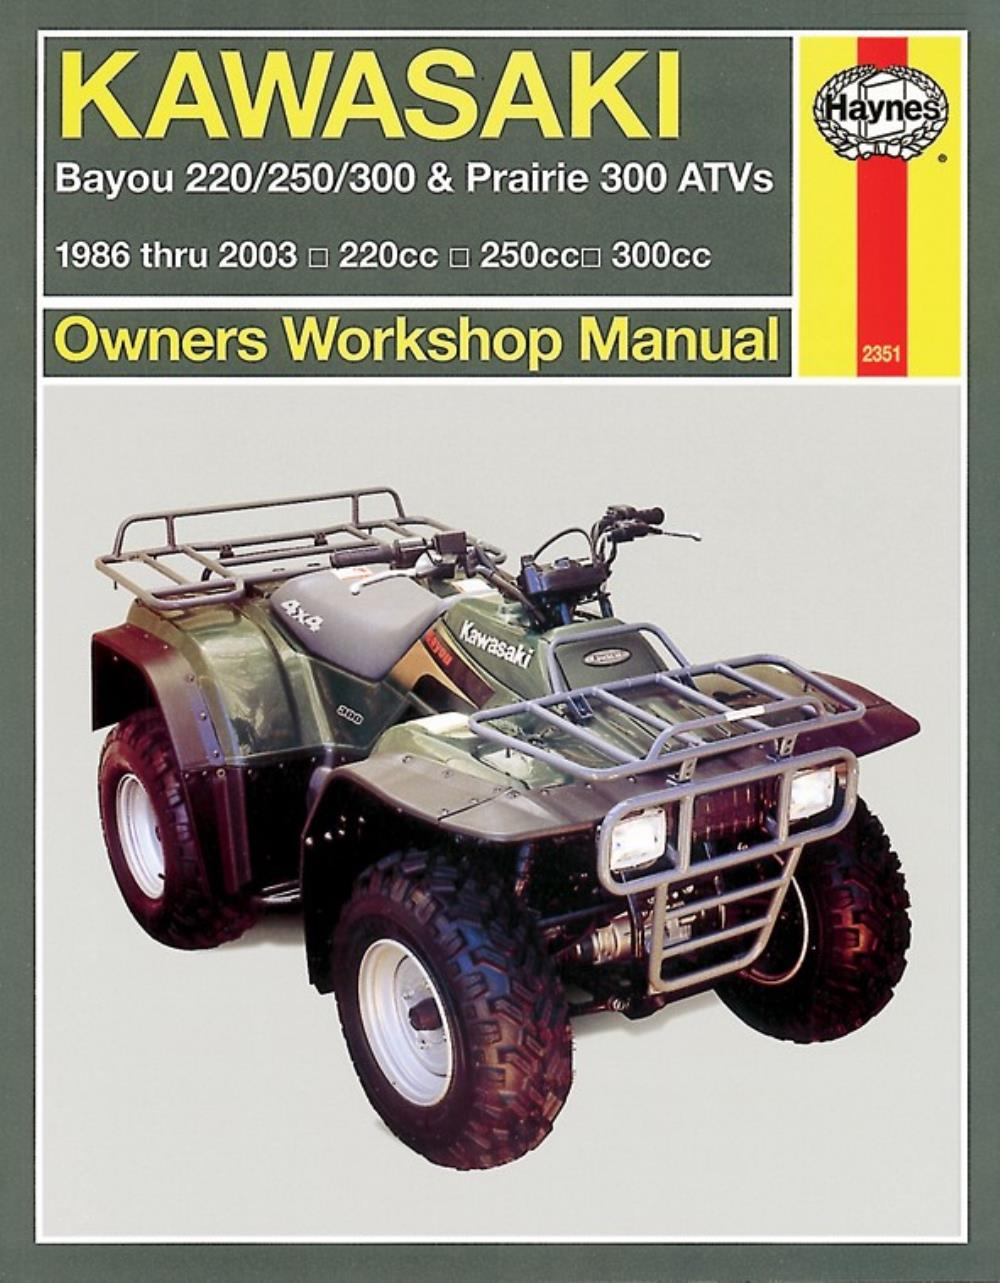 Manual Haynes for 1990 Kawasaki KLF 300 C2 Bayou